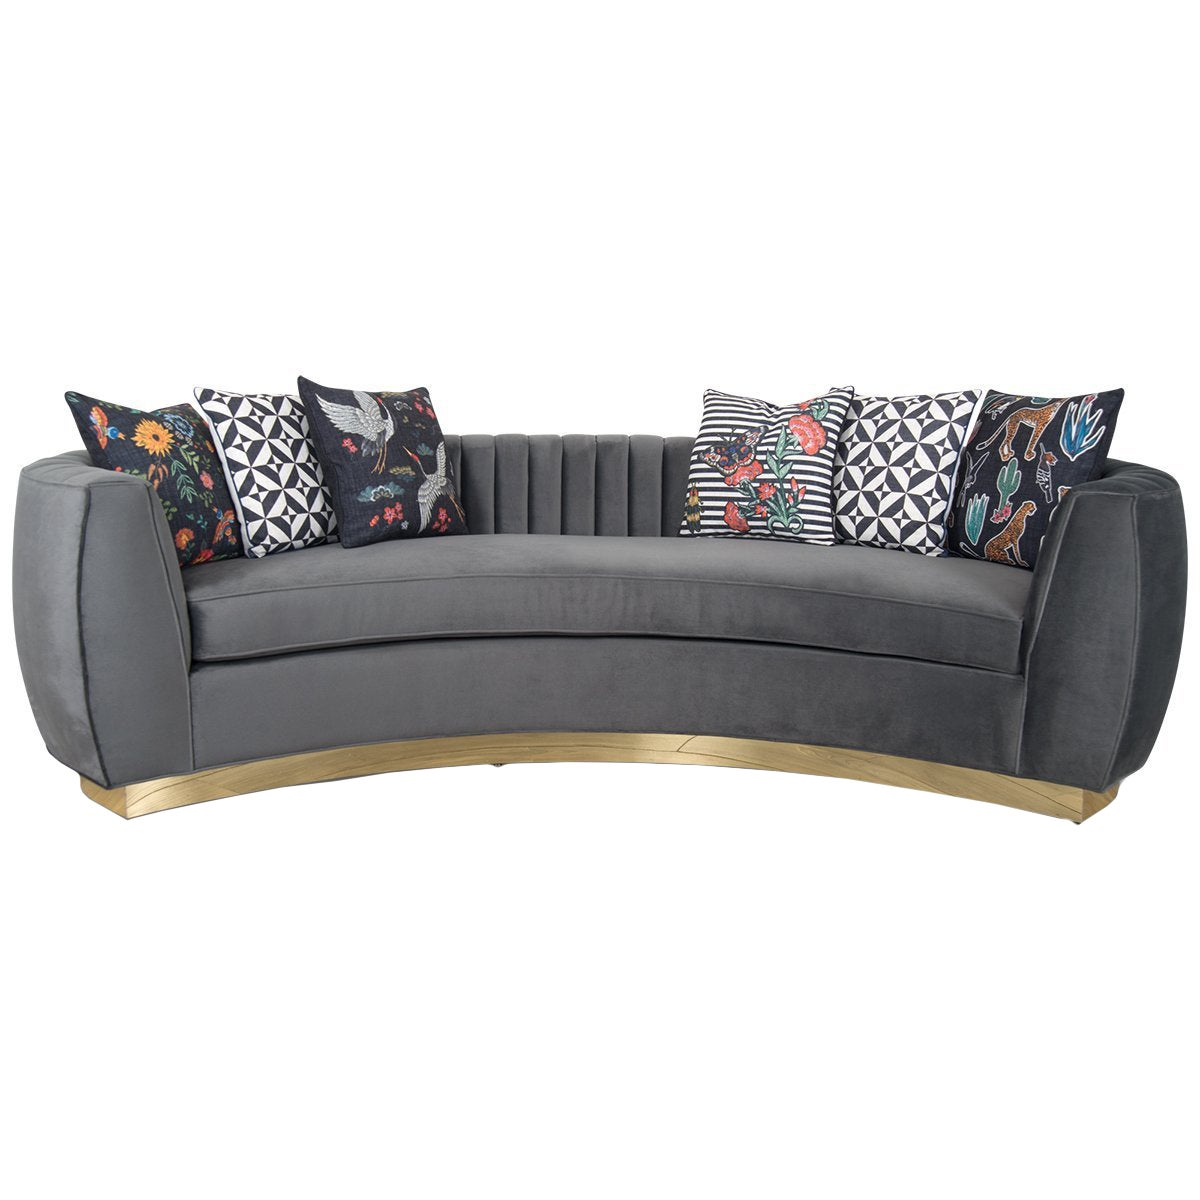 Modern Art Deco Style Sofa with Long-Arm Tufting Charcoal Velvet & Gold Toe Kick